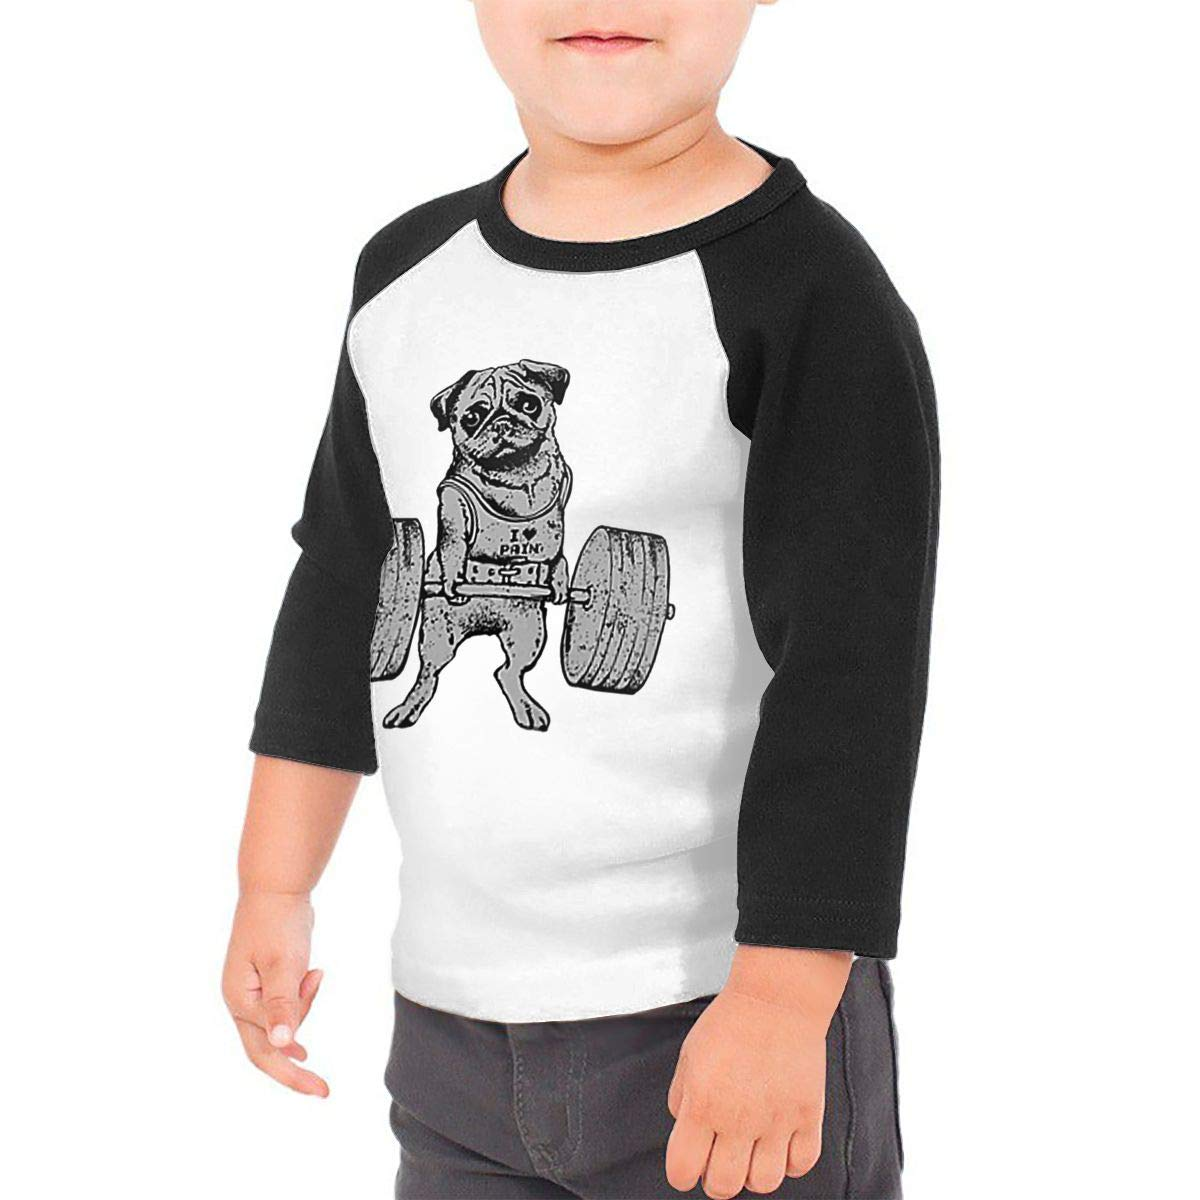 yimo Pug Weightlifting Unisex Toddler Baseball Jersey Contrast 3//4 Sleeves Tee